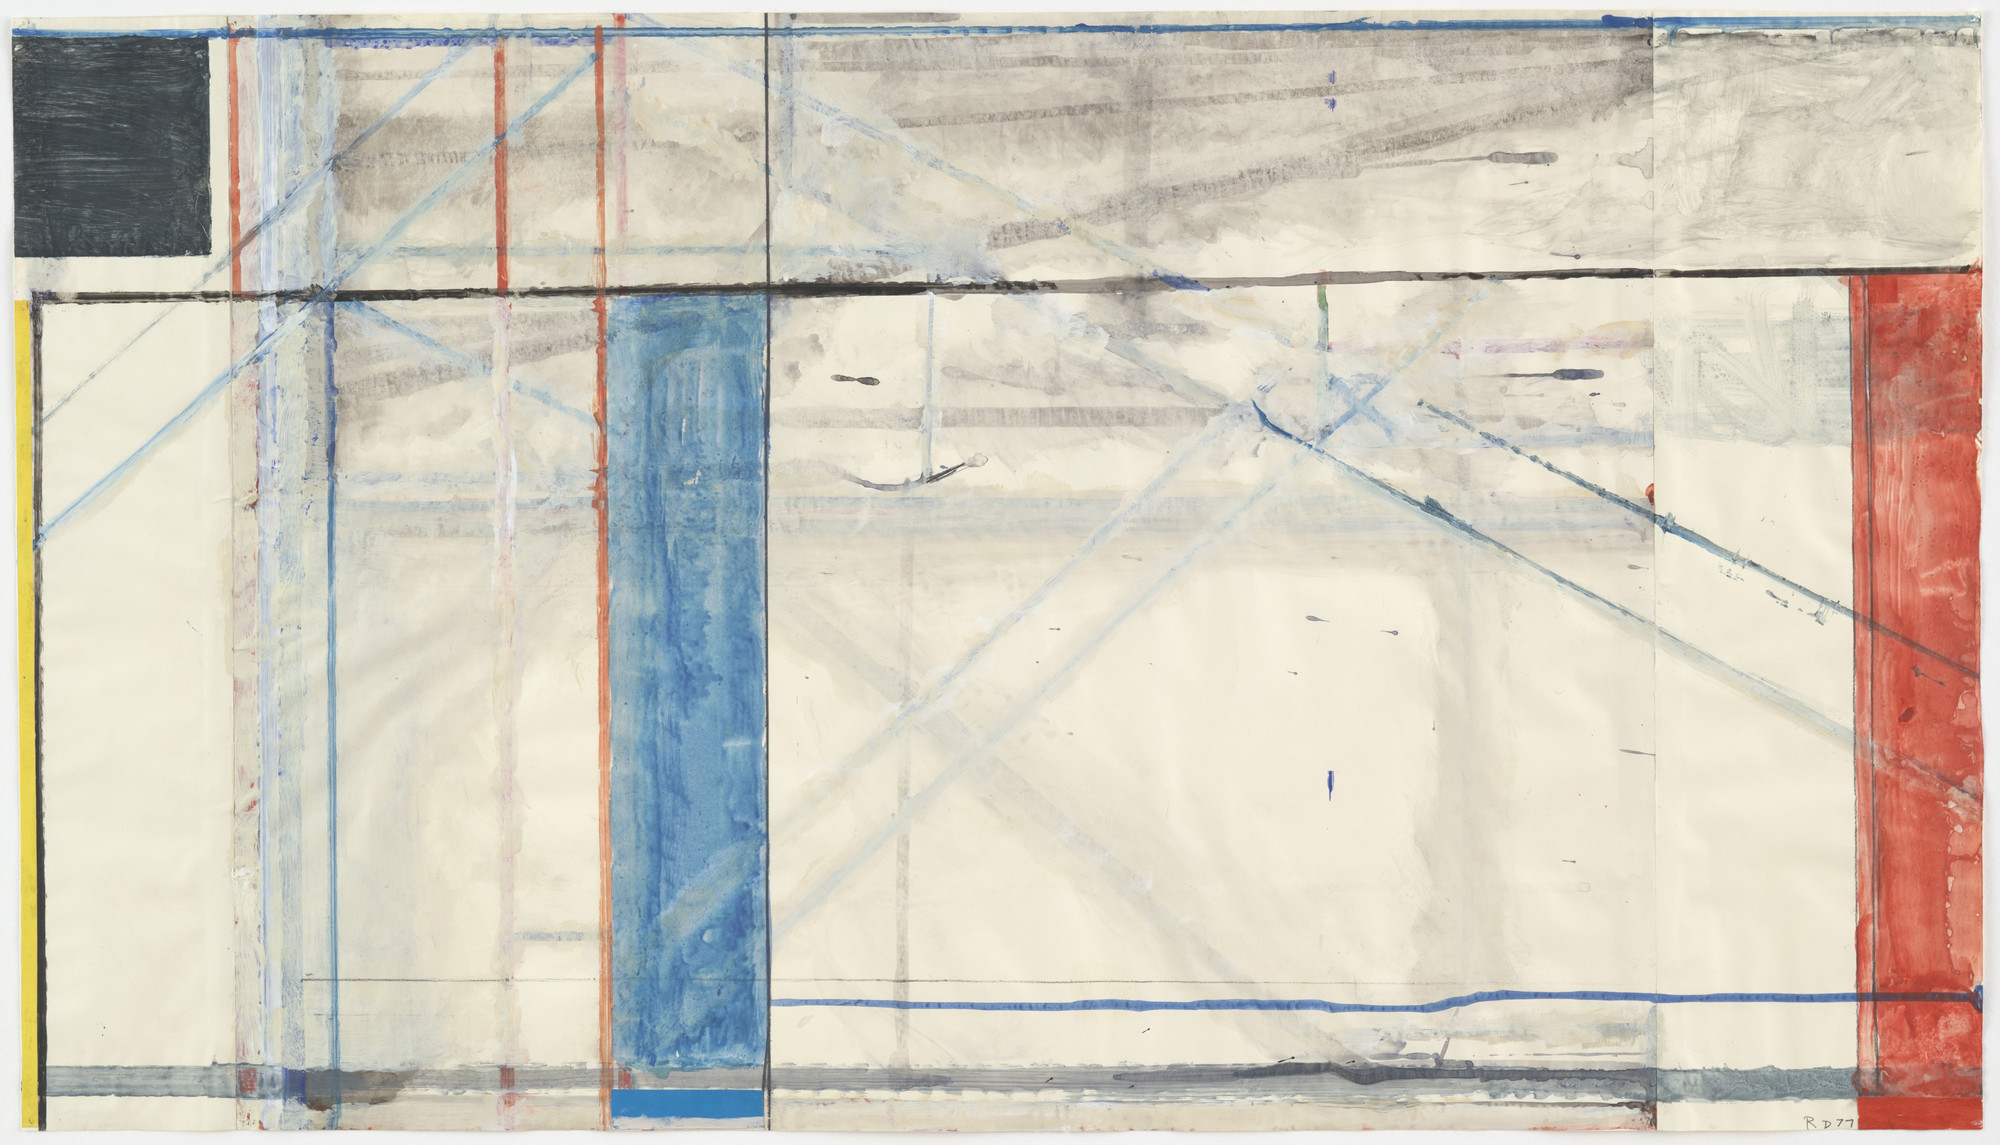 Richard Diebenkorn. Untitled (Ocean Park). 1977